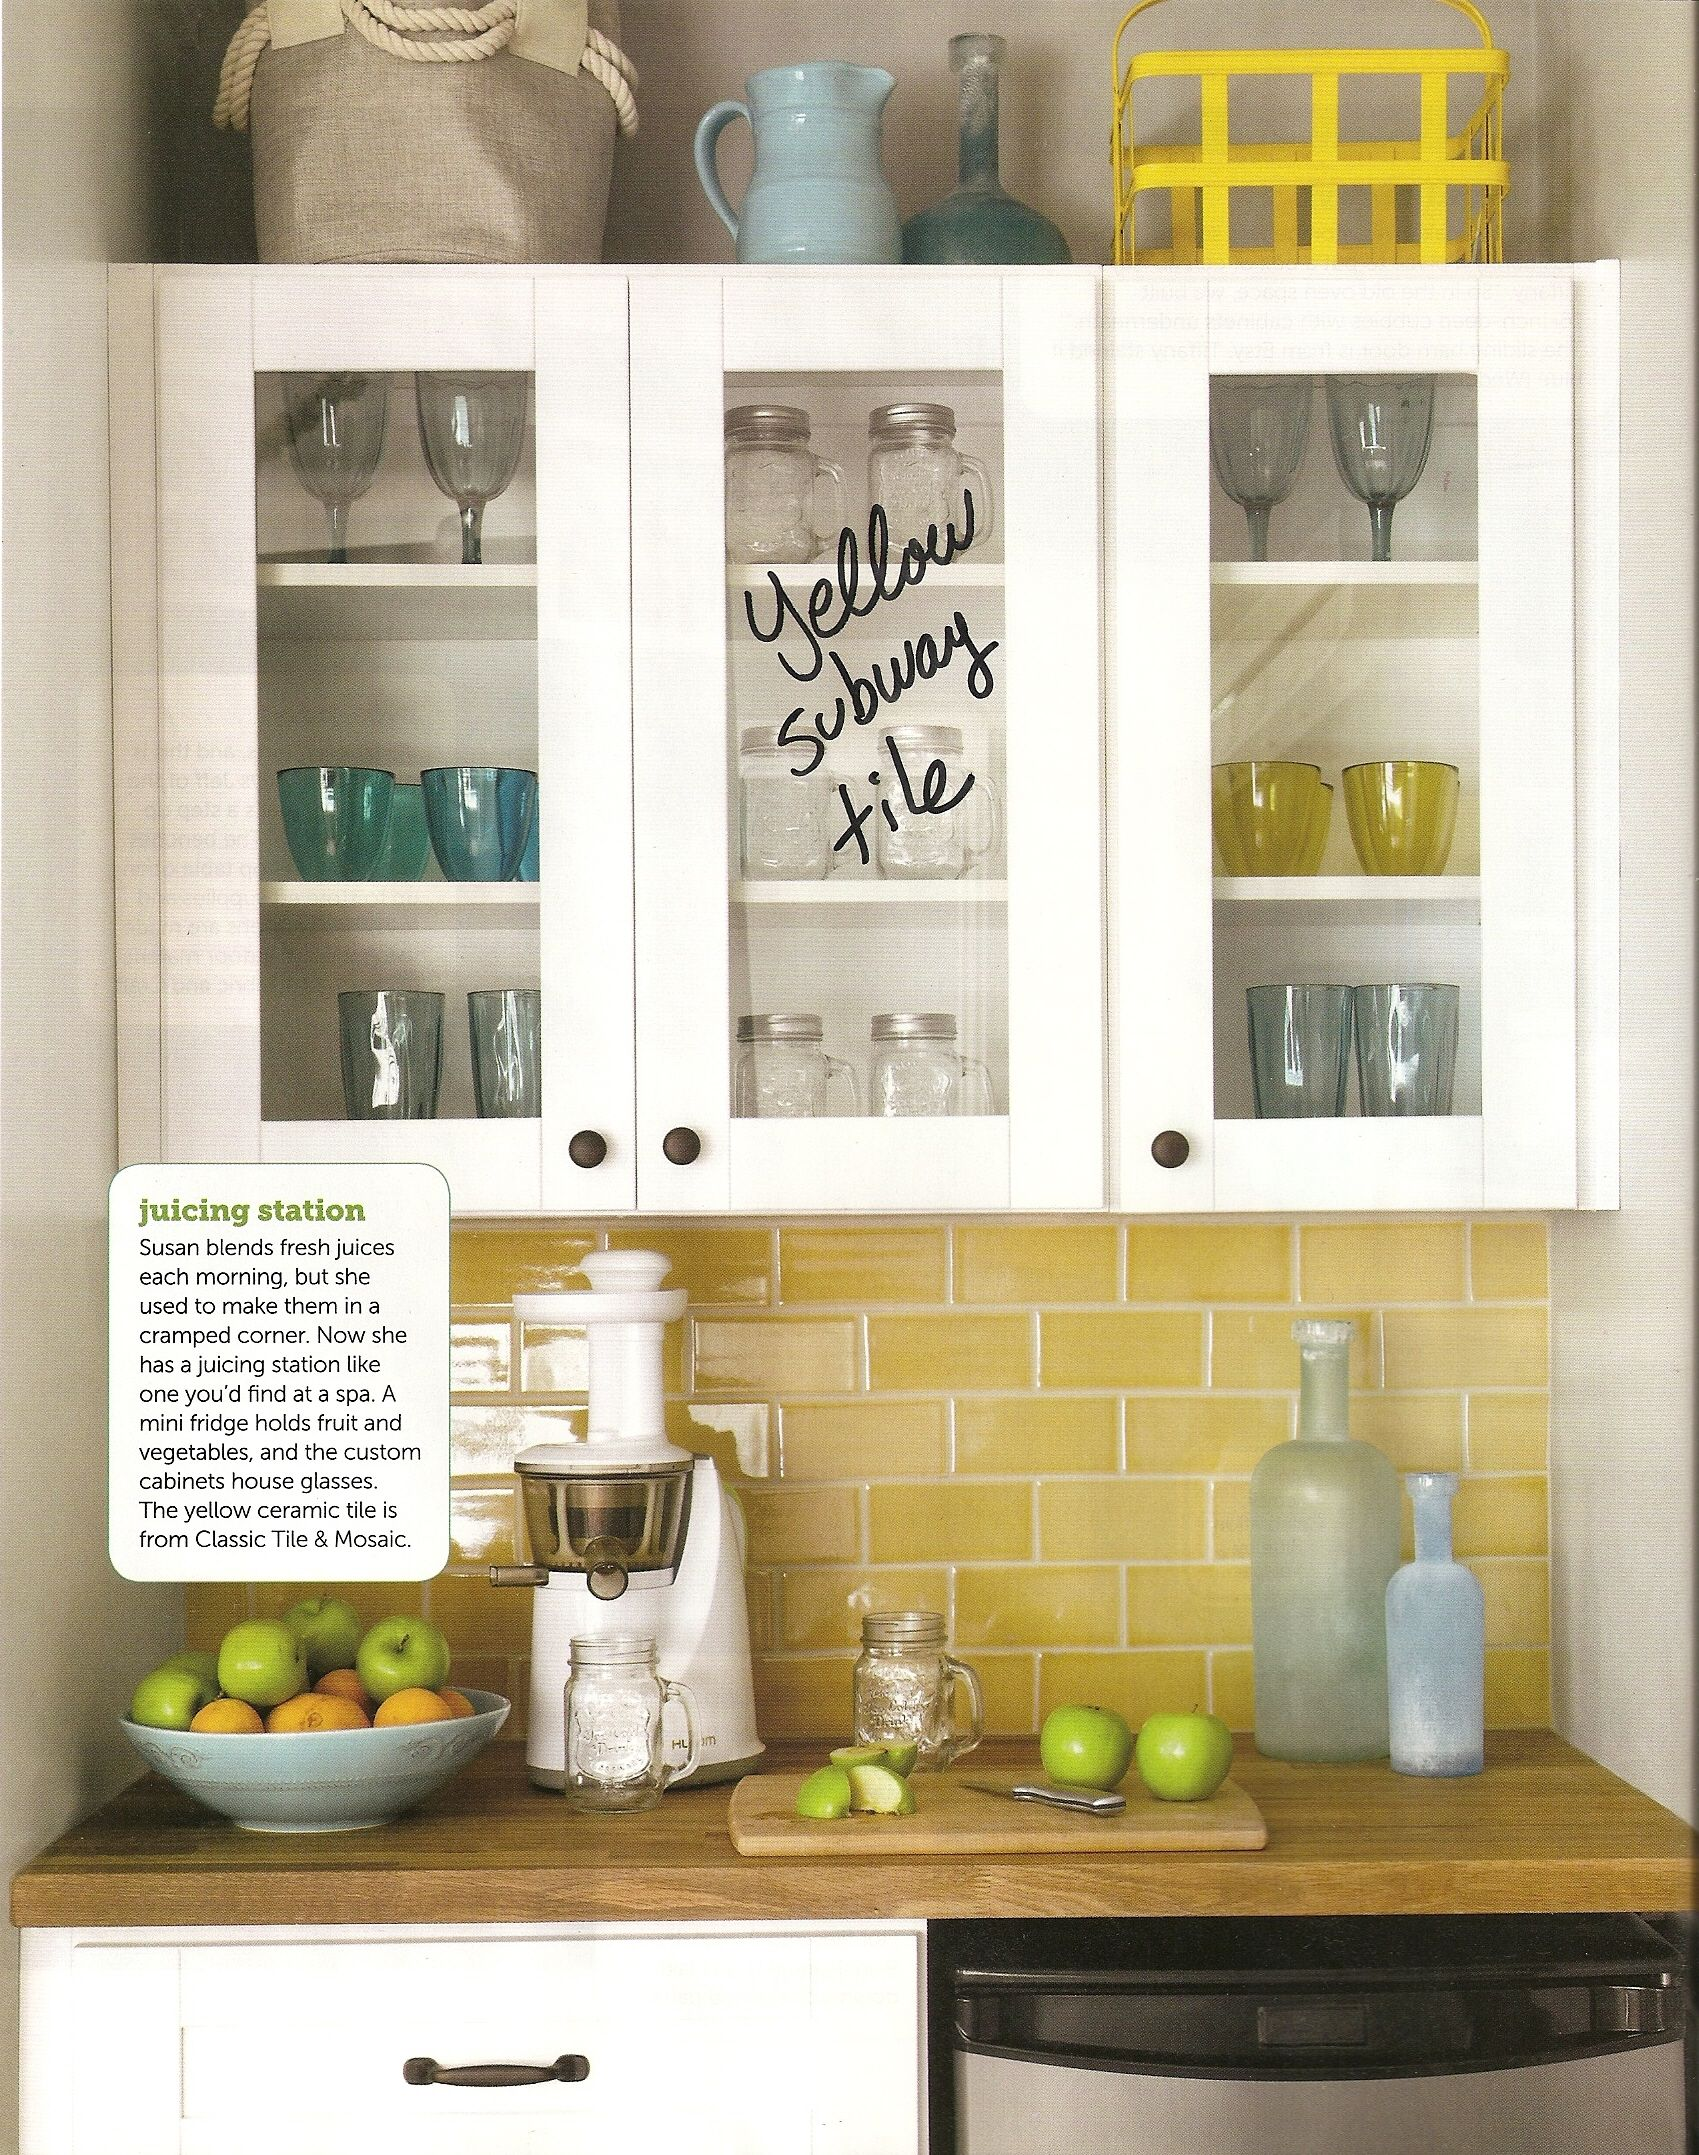 Yellow subway tile was featured in hgtv magazine im in love with yellow subway tile was featured in hgtv magazine im in love with it dailygadgetfo Images